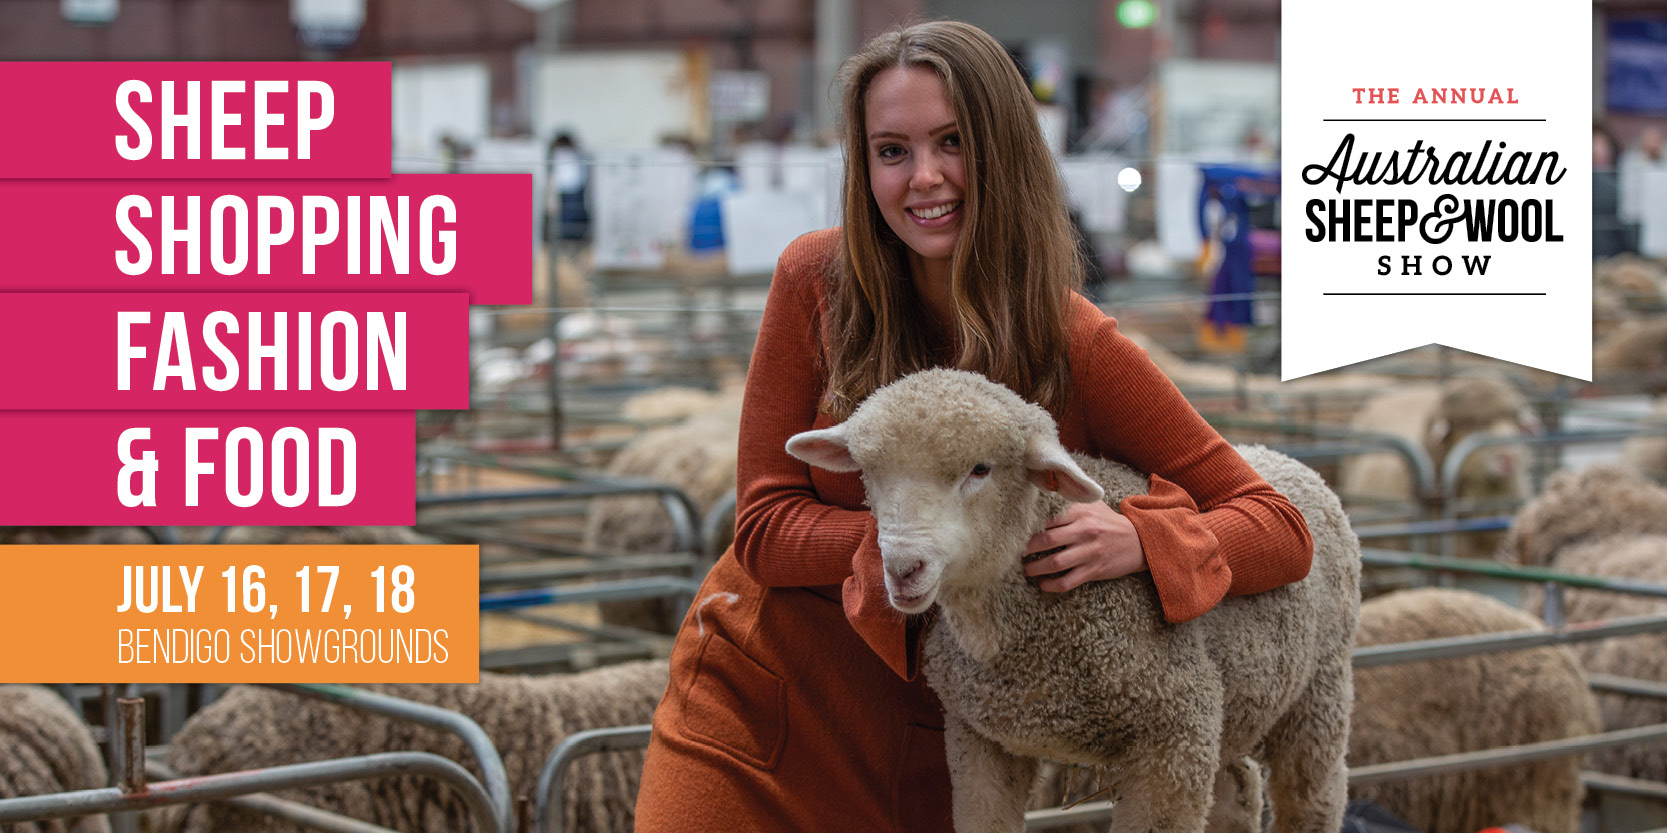 Tickets for The Australian Sheep and Wool Show in North Bendigo from Ticketbooth